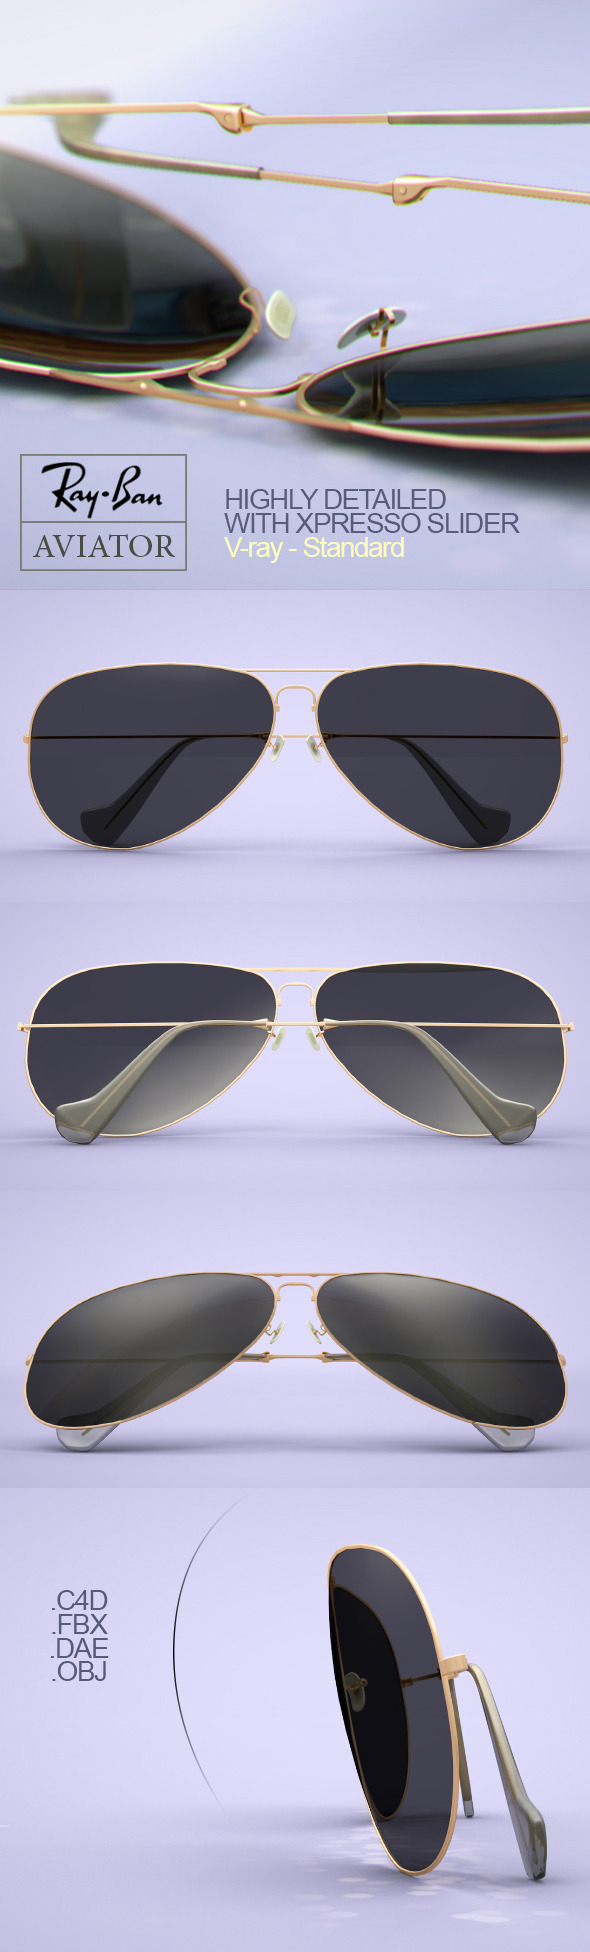 Rayban Aviator Sunglasses - 3DOcean Item for Sale